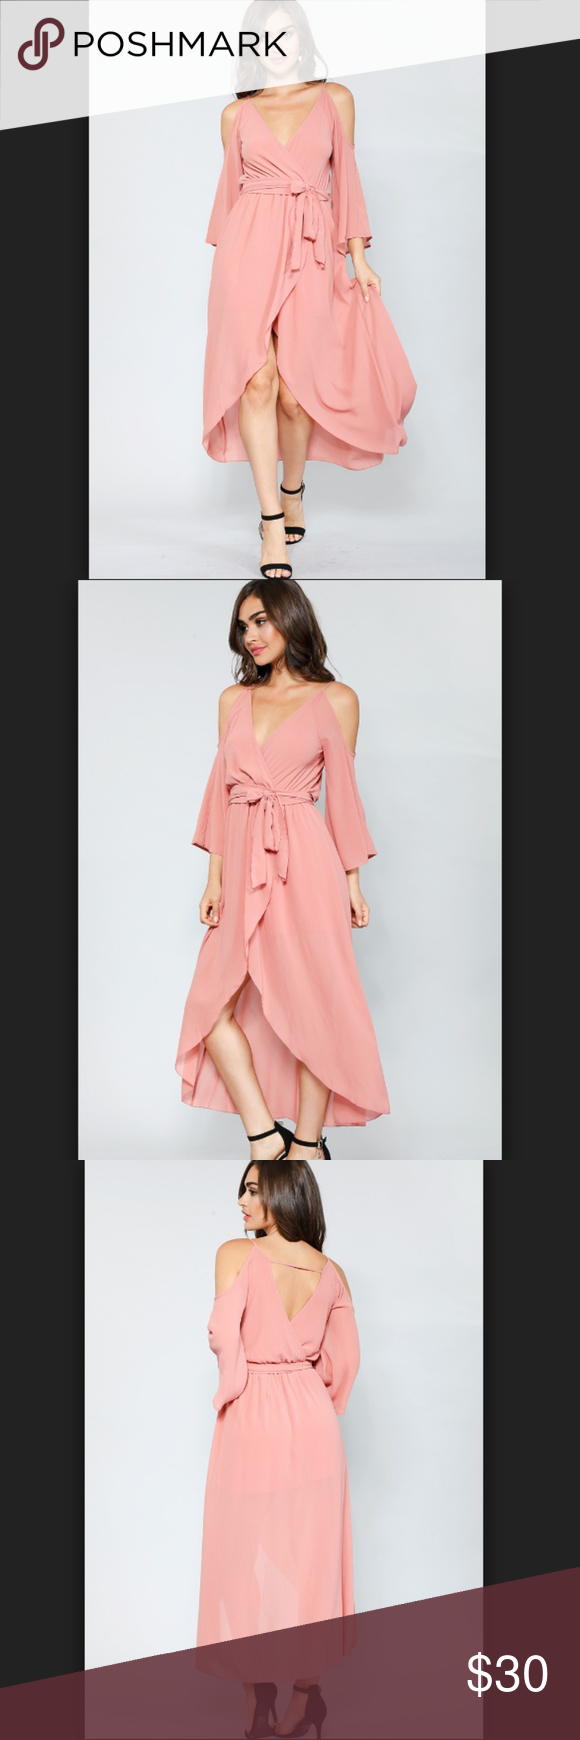 c90a40a517a Dusty Pink Open Shoulder Dress New Size S Model is wearing a small. All  Measurements